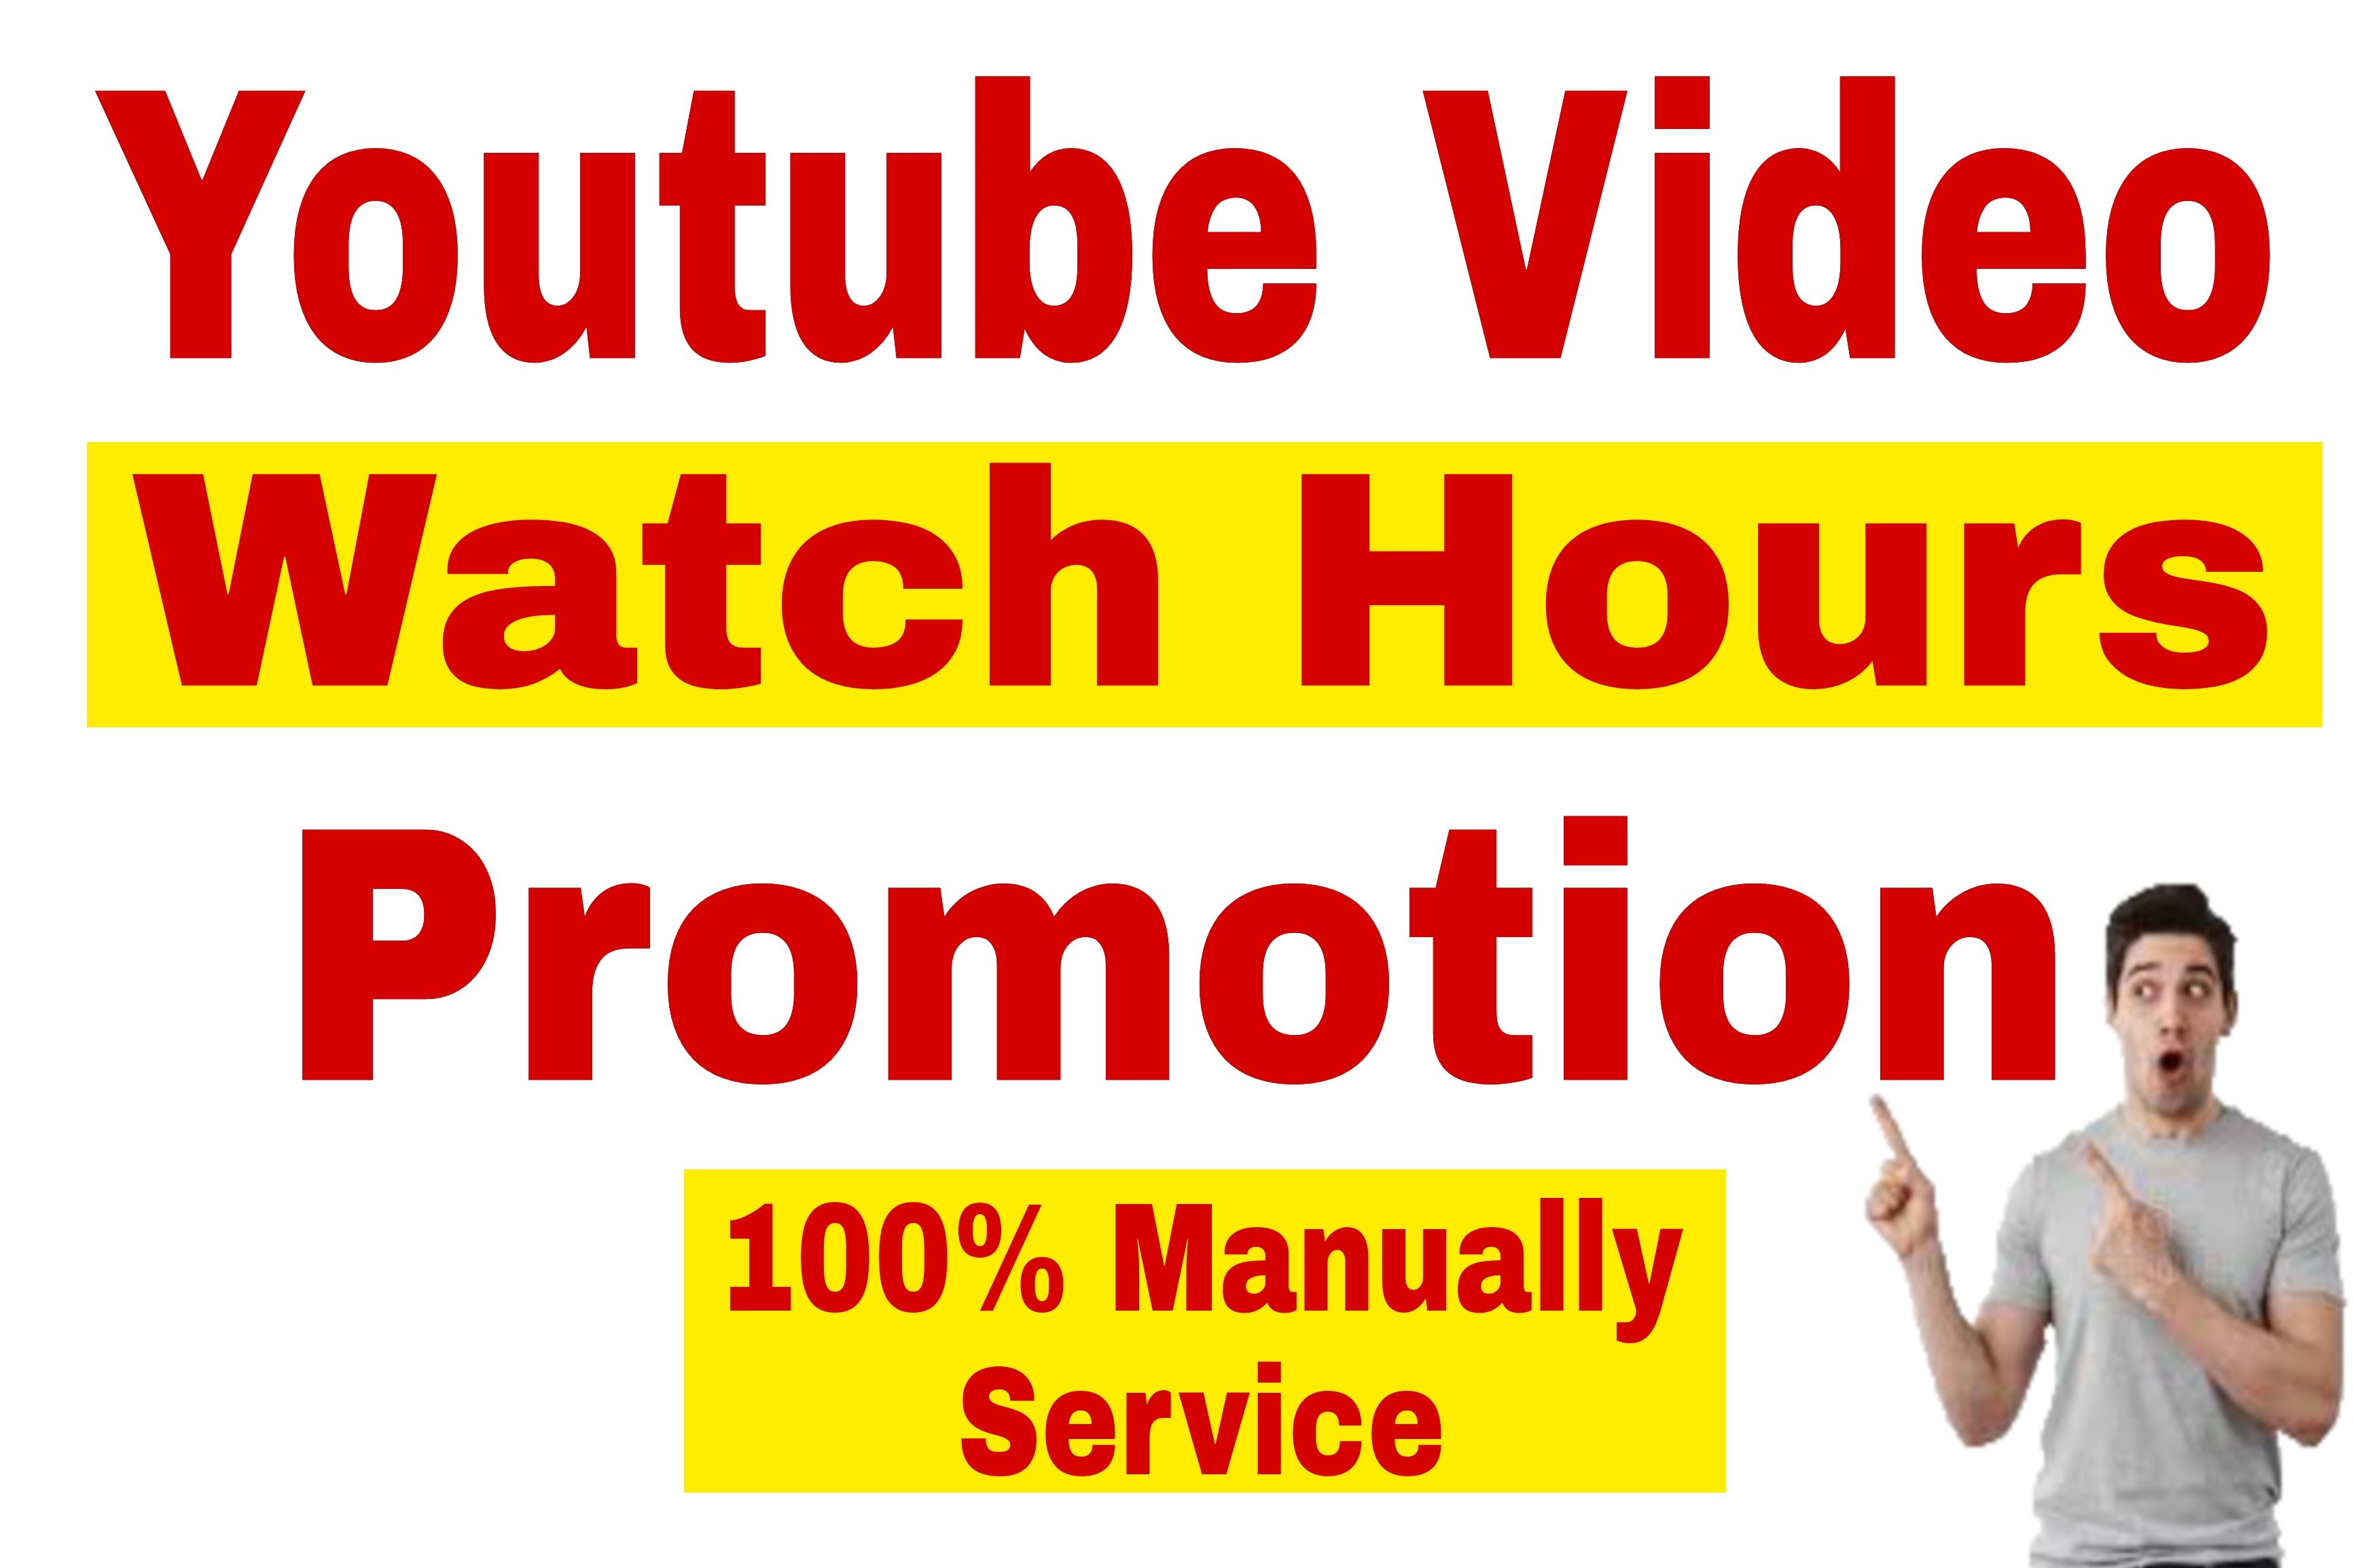 Youtube Video Watch Time Hours Promotion Very Fast Delivery